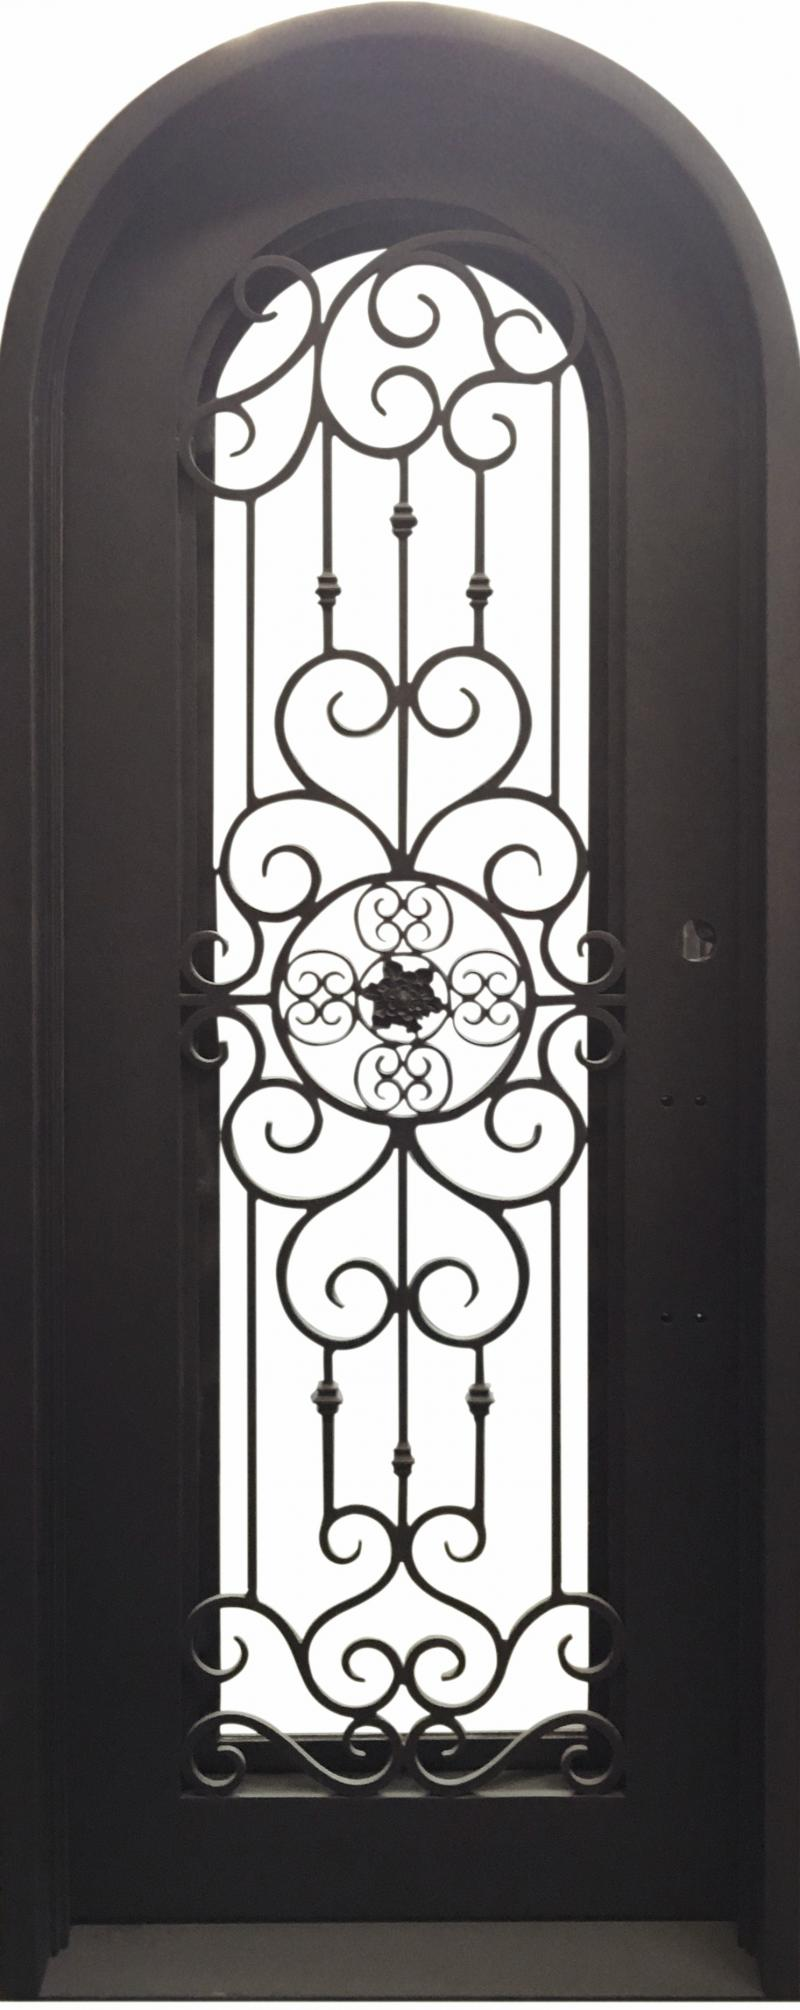 azs front door design iron door frame design iron door.html